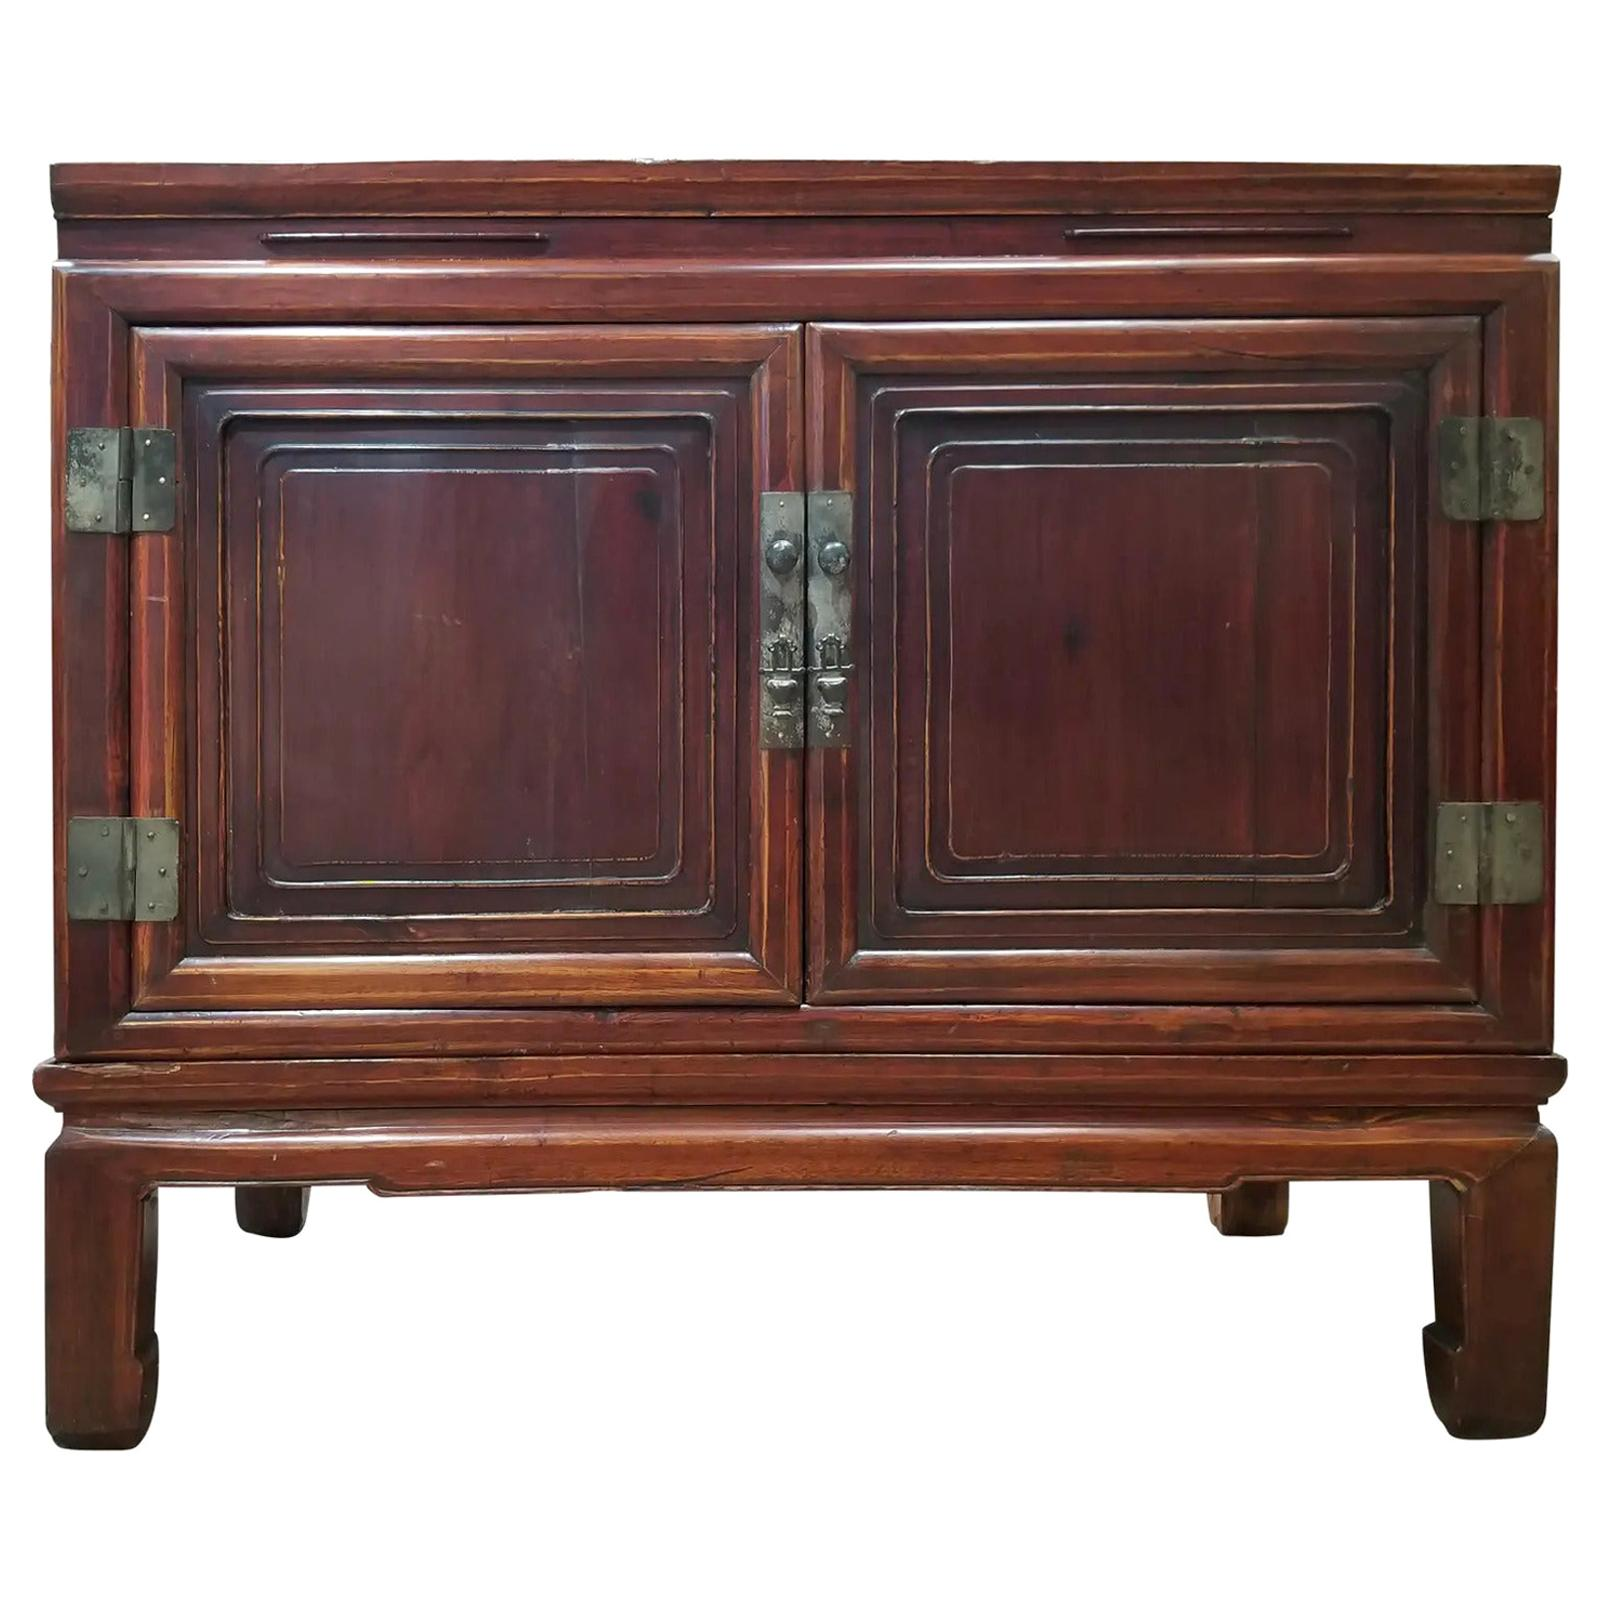 Chinese Qing Dynasty Storage Cabinet